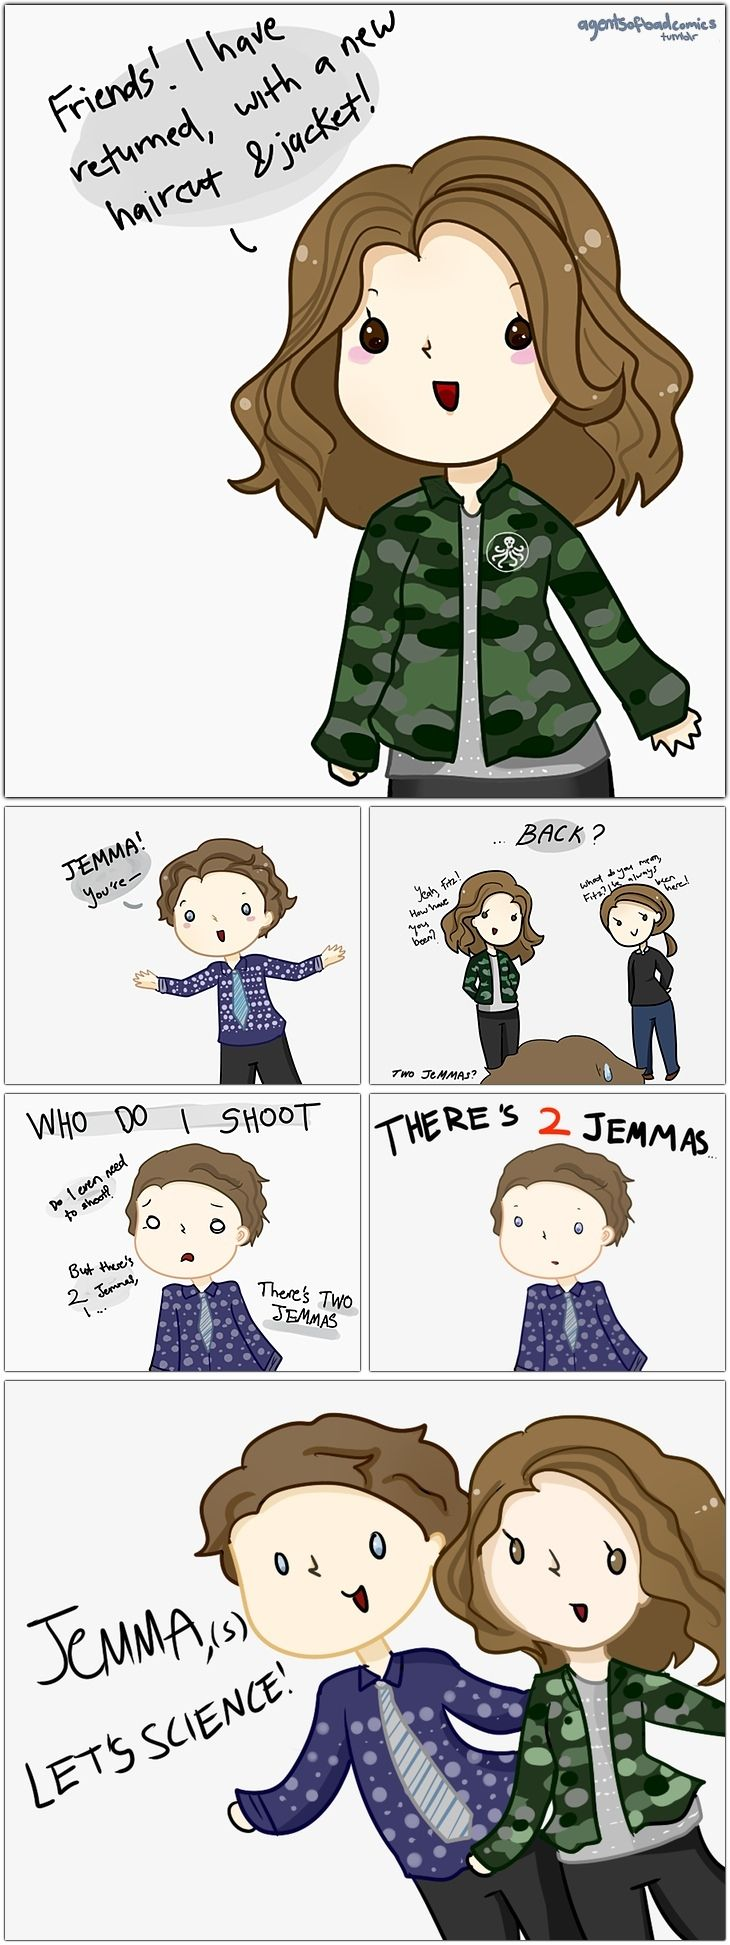 2 Simmons || Leo Fitz, Jemma Simmons || Agents of Bad Comics || #fanart #humor #fitzsimmons